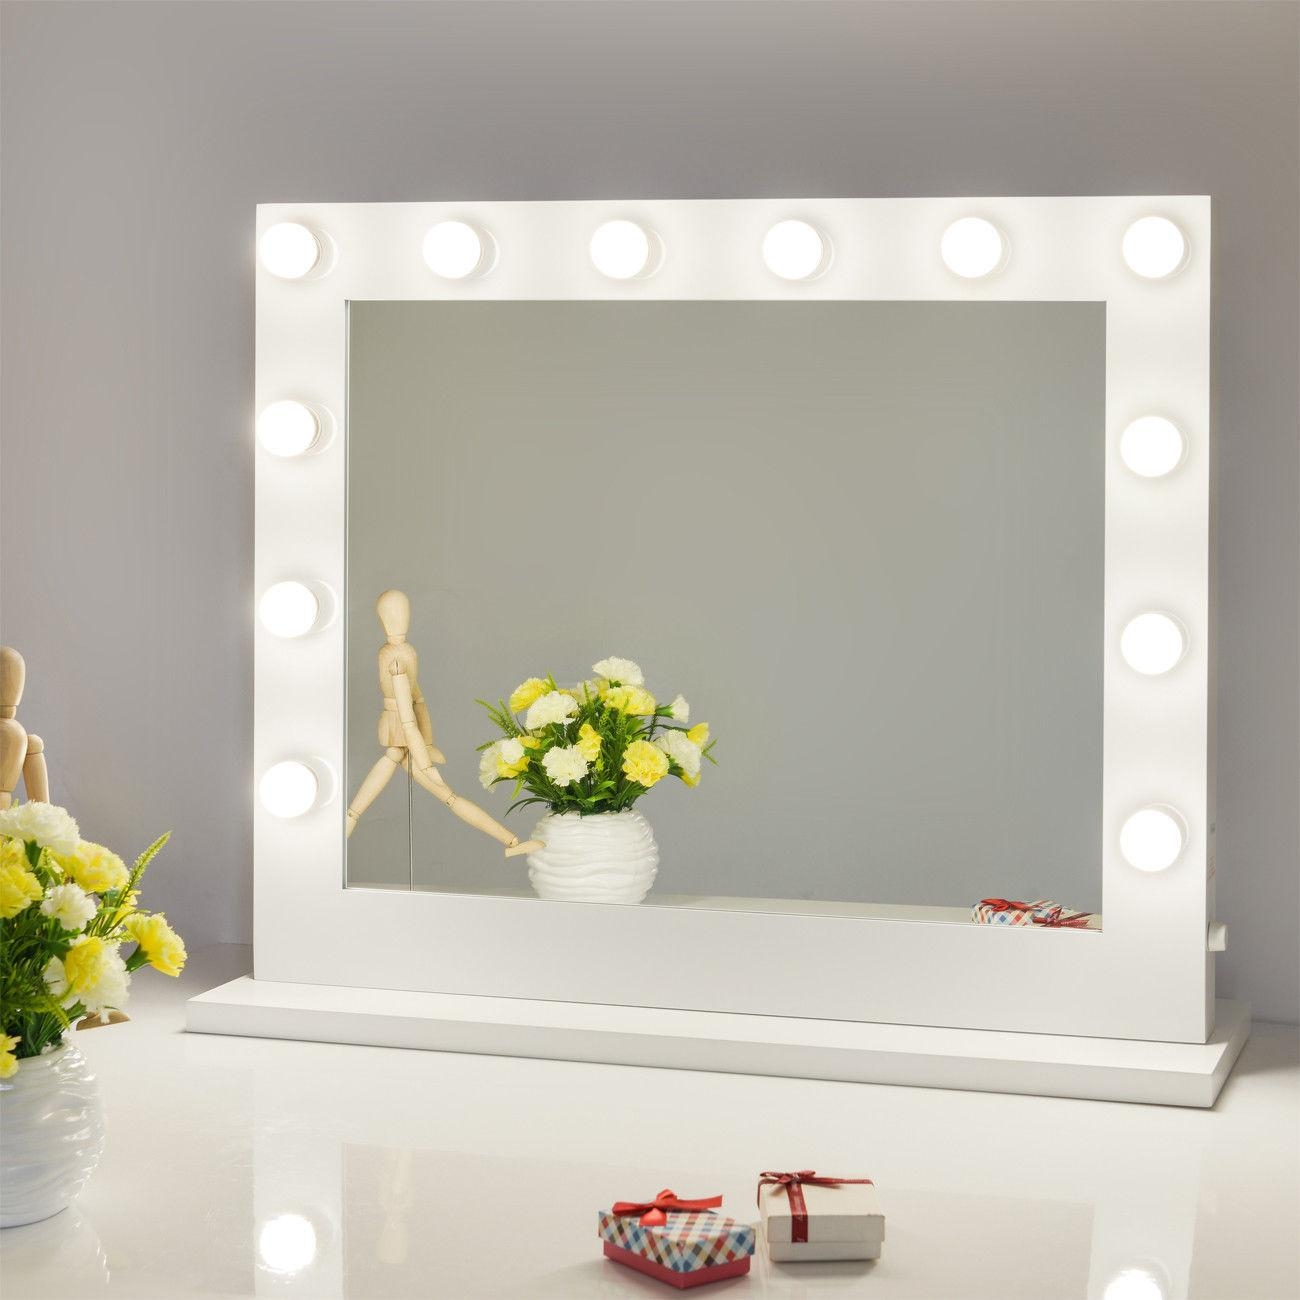 Chende White Hollywood Lighted Makeup Mirror | Ebay Pertaining To Lit Makeup Mirrors (Image 11 of 20)